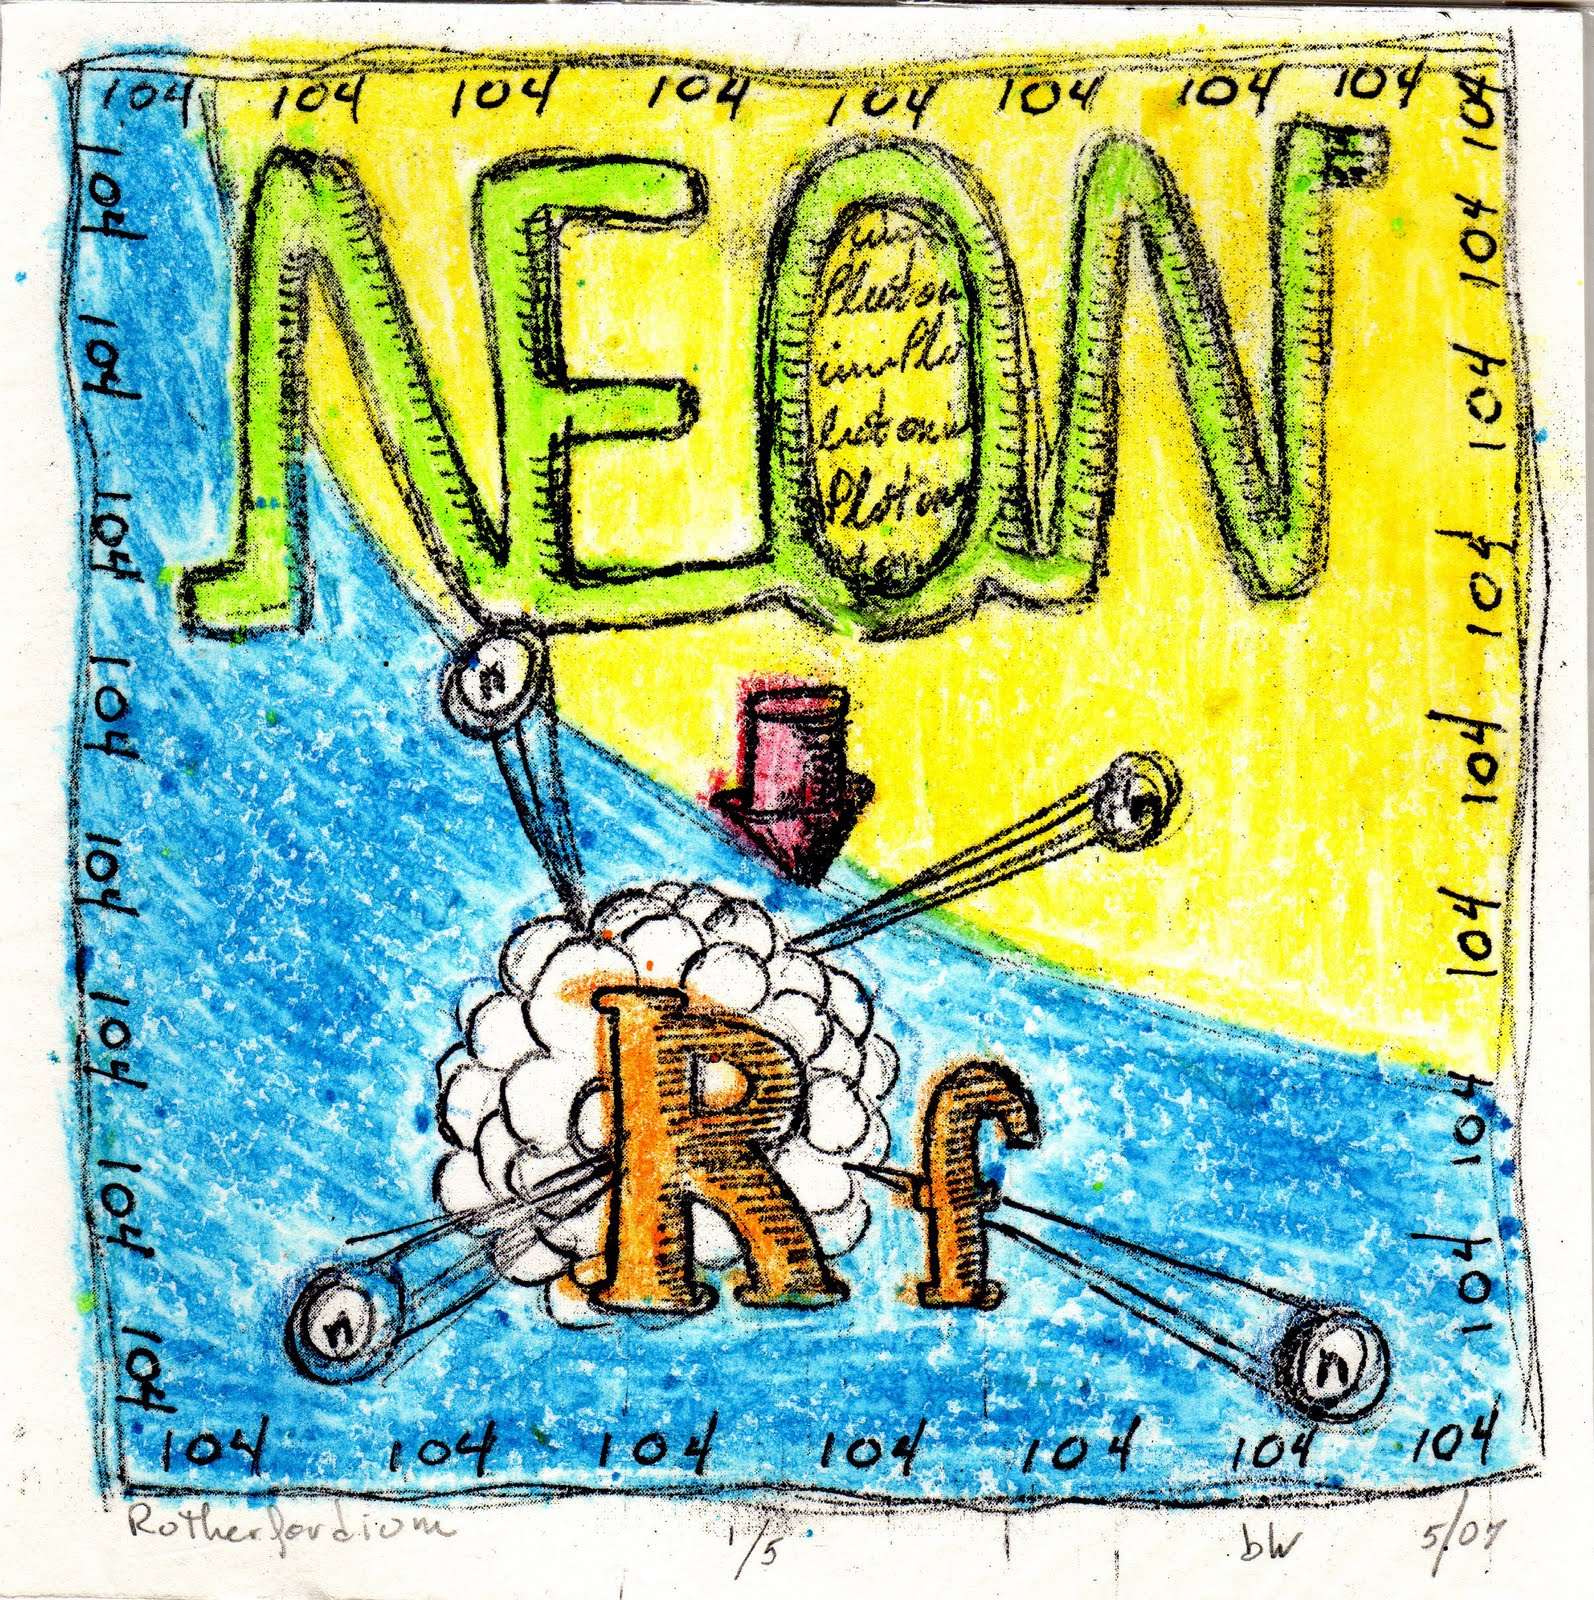 Atomic surf arts periodic table printmaking project russian and american researchers both laid claim to the element which was called kirchutovium for a while by the russians until a truce was decided and urtaz Images